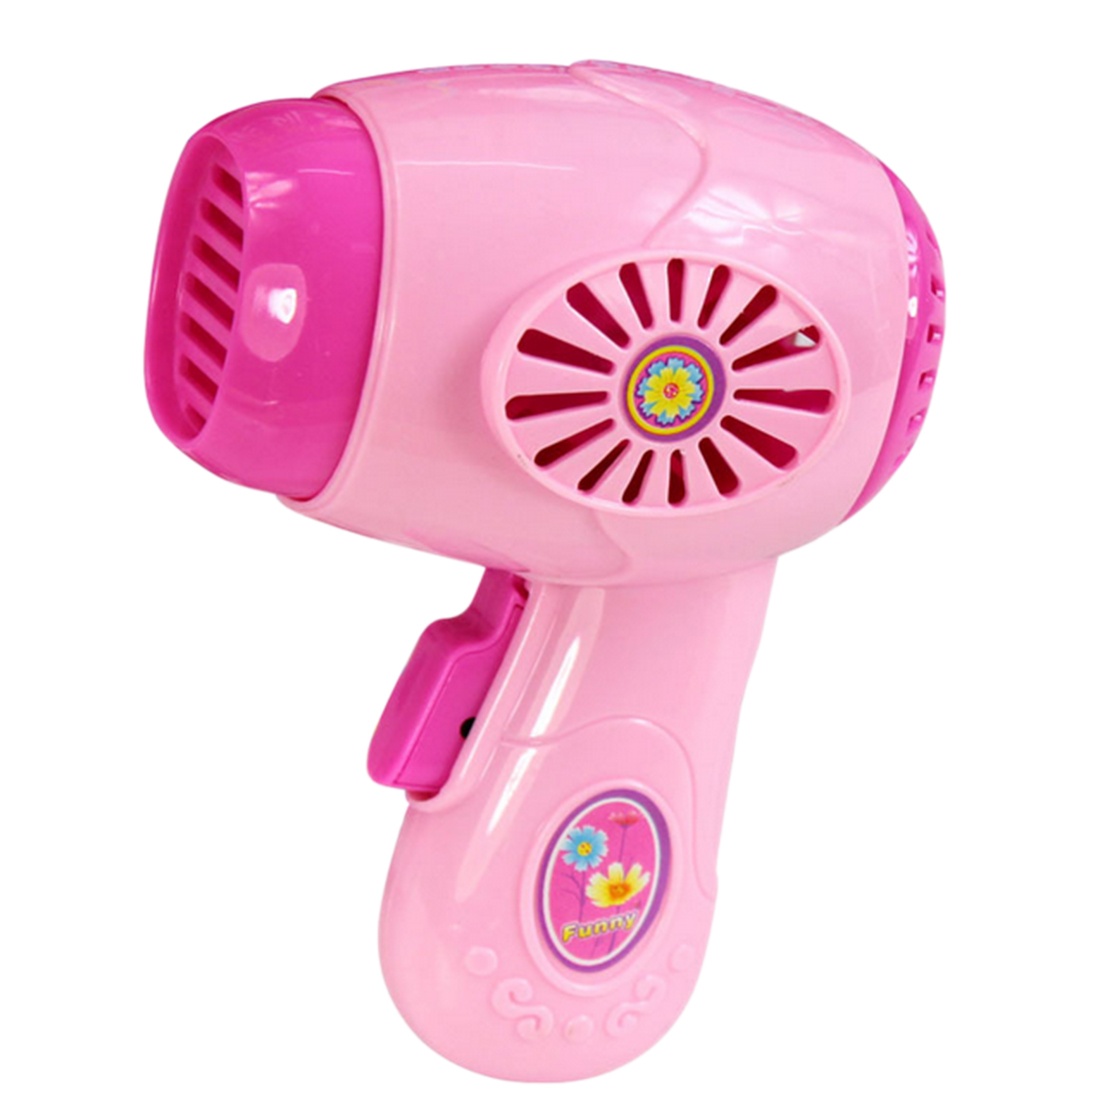 Creative new Play <font><b>house</b></font> <font><b>girl</b></font> family <font><b>toys</b></font> new simulation life small household appliances hair dryer <font><b>toys</b></font> Christmas gifts image